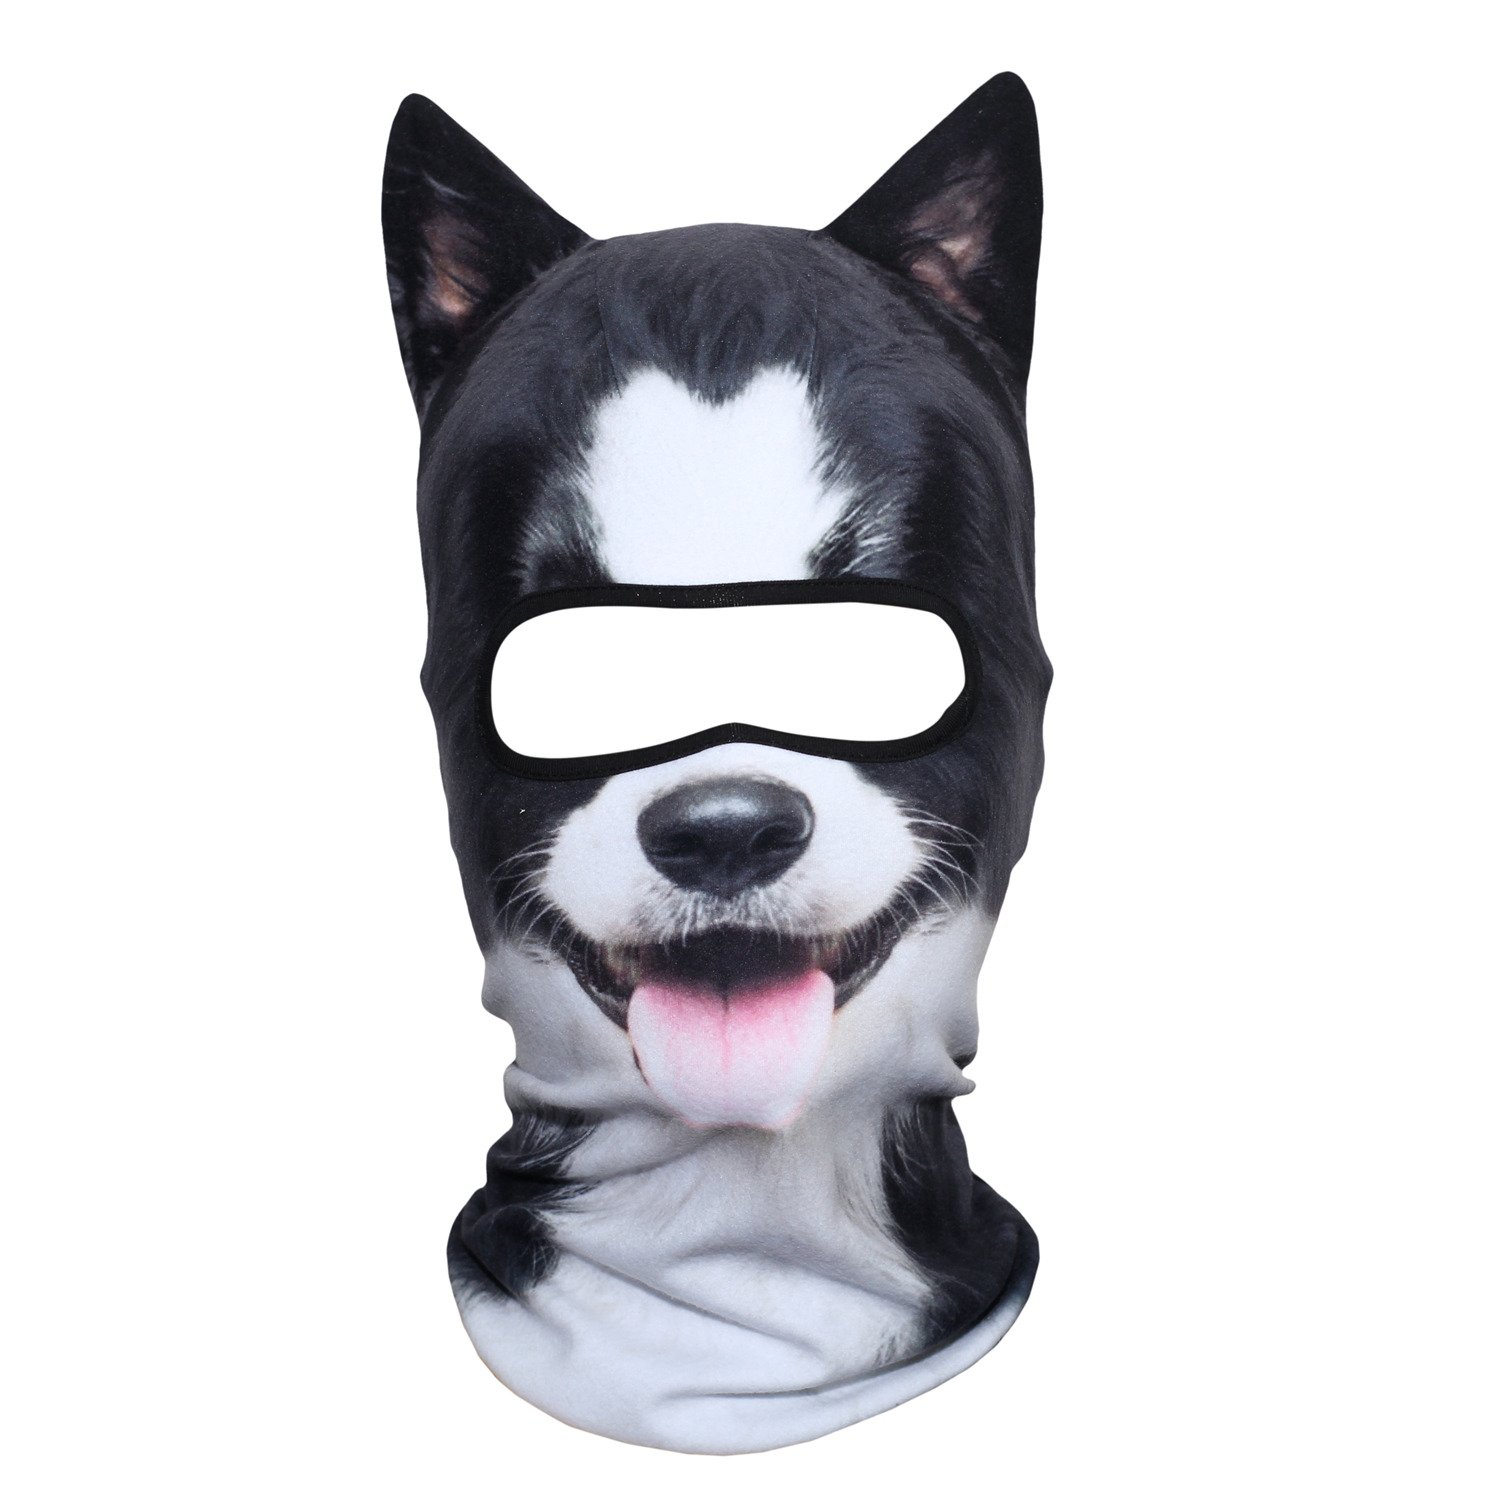 JIUSY 3D Animal Ears Fleece Thermal Hood Balaclava Neck Warmer Face Mask for Cold Weather Winter Outdoor Sport Motorcycle Cycling Riding Hunting Ski Snowboard Halloween Party Border Collie MDD-23